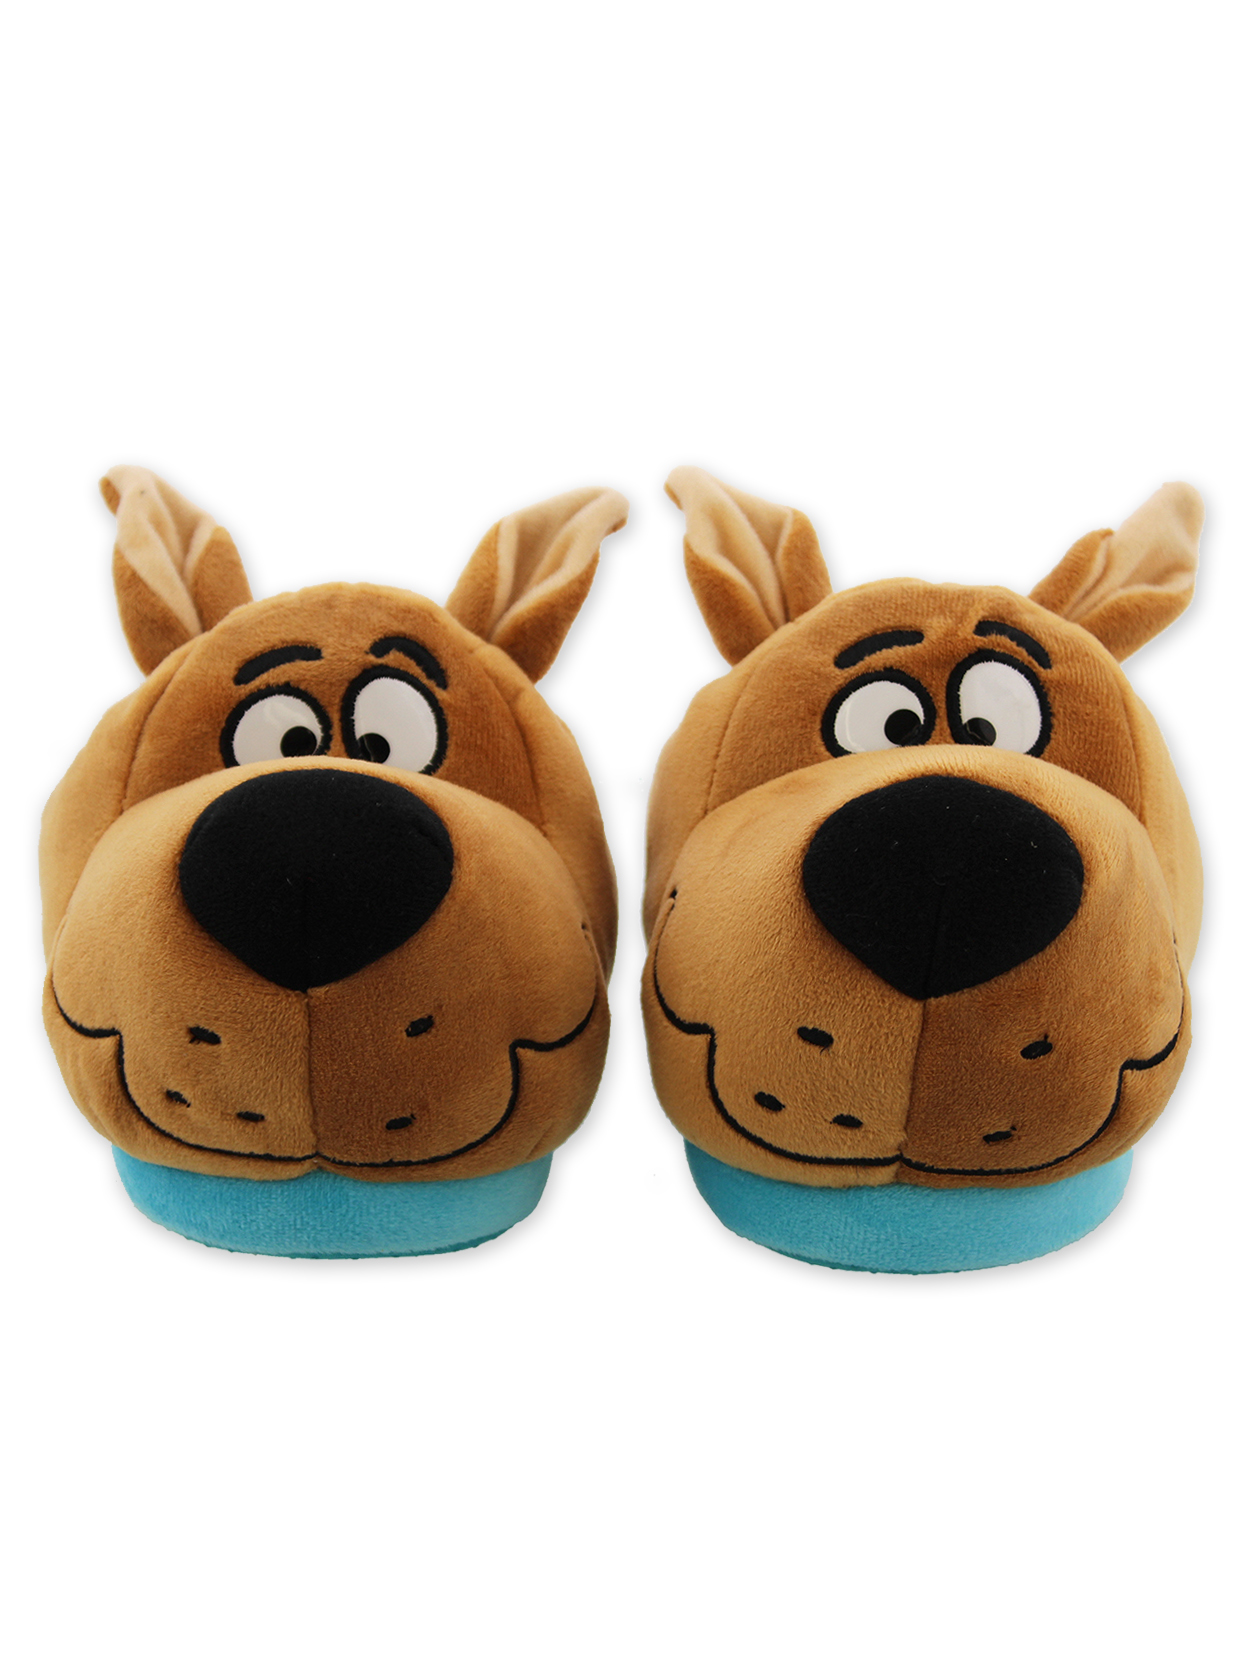 Scooby Doo Boys Toddler Plush Slippers